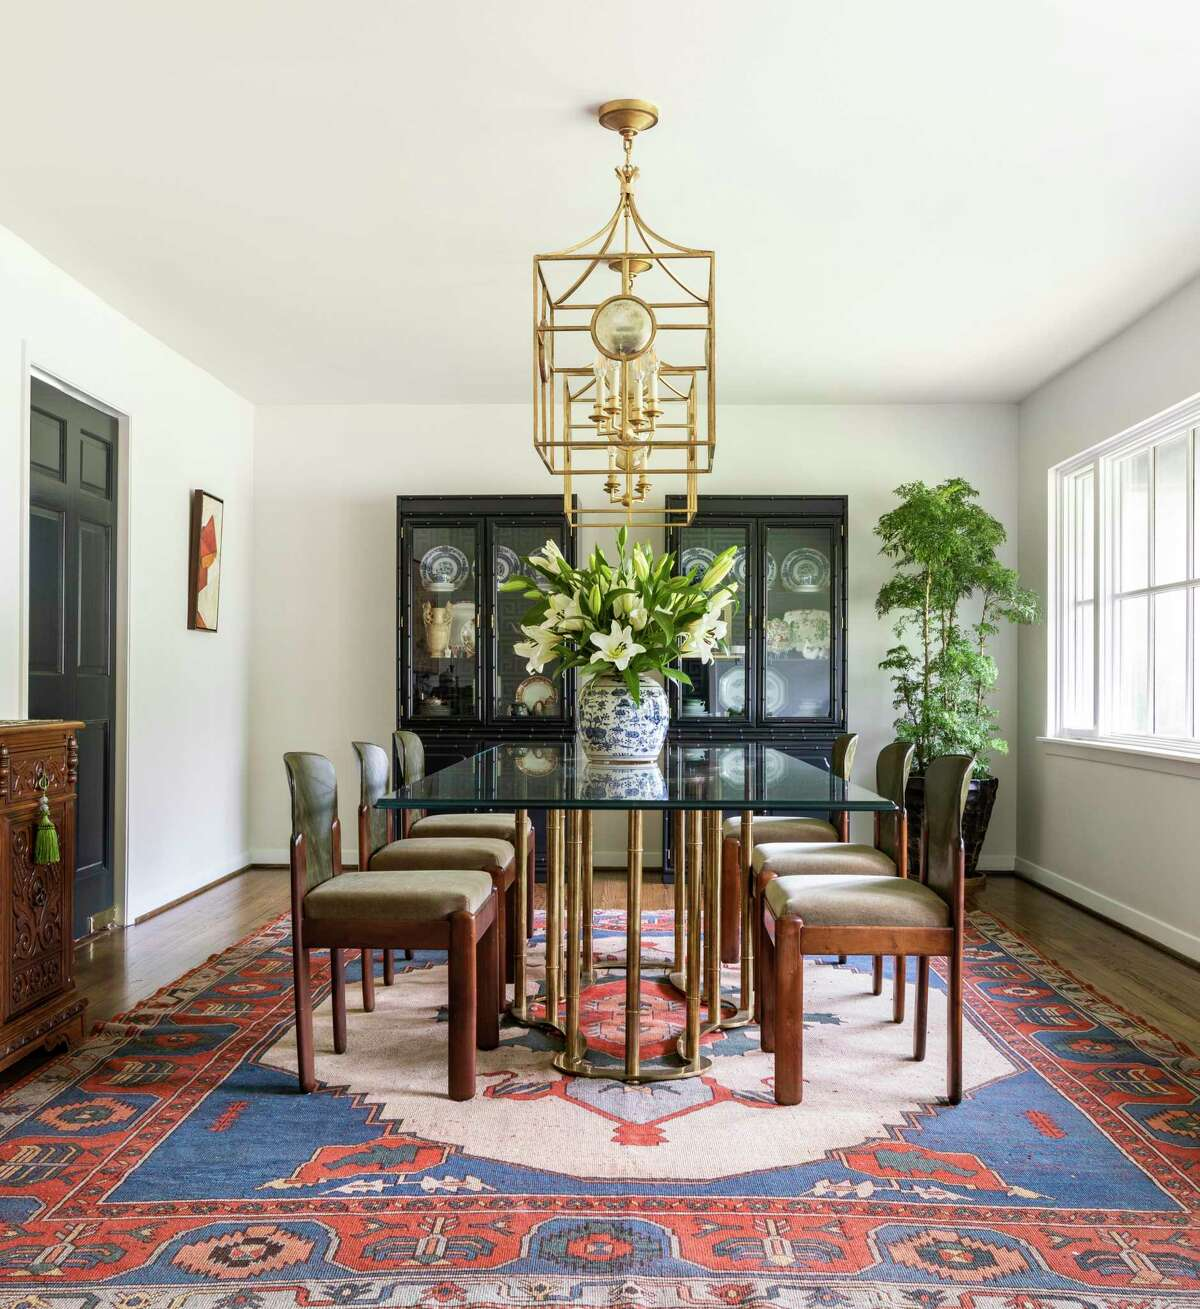 The dining room is filled with Asian influence and vintage finds.